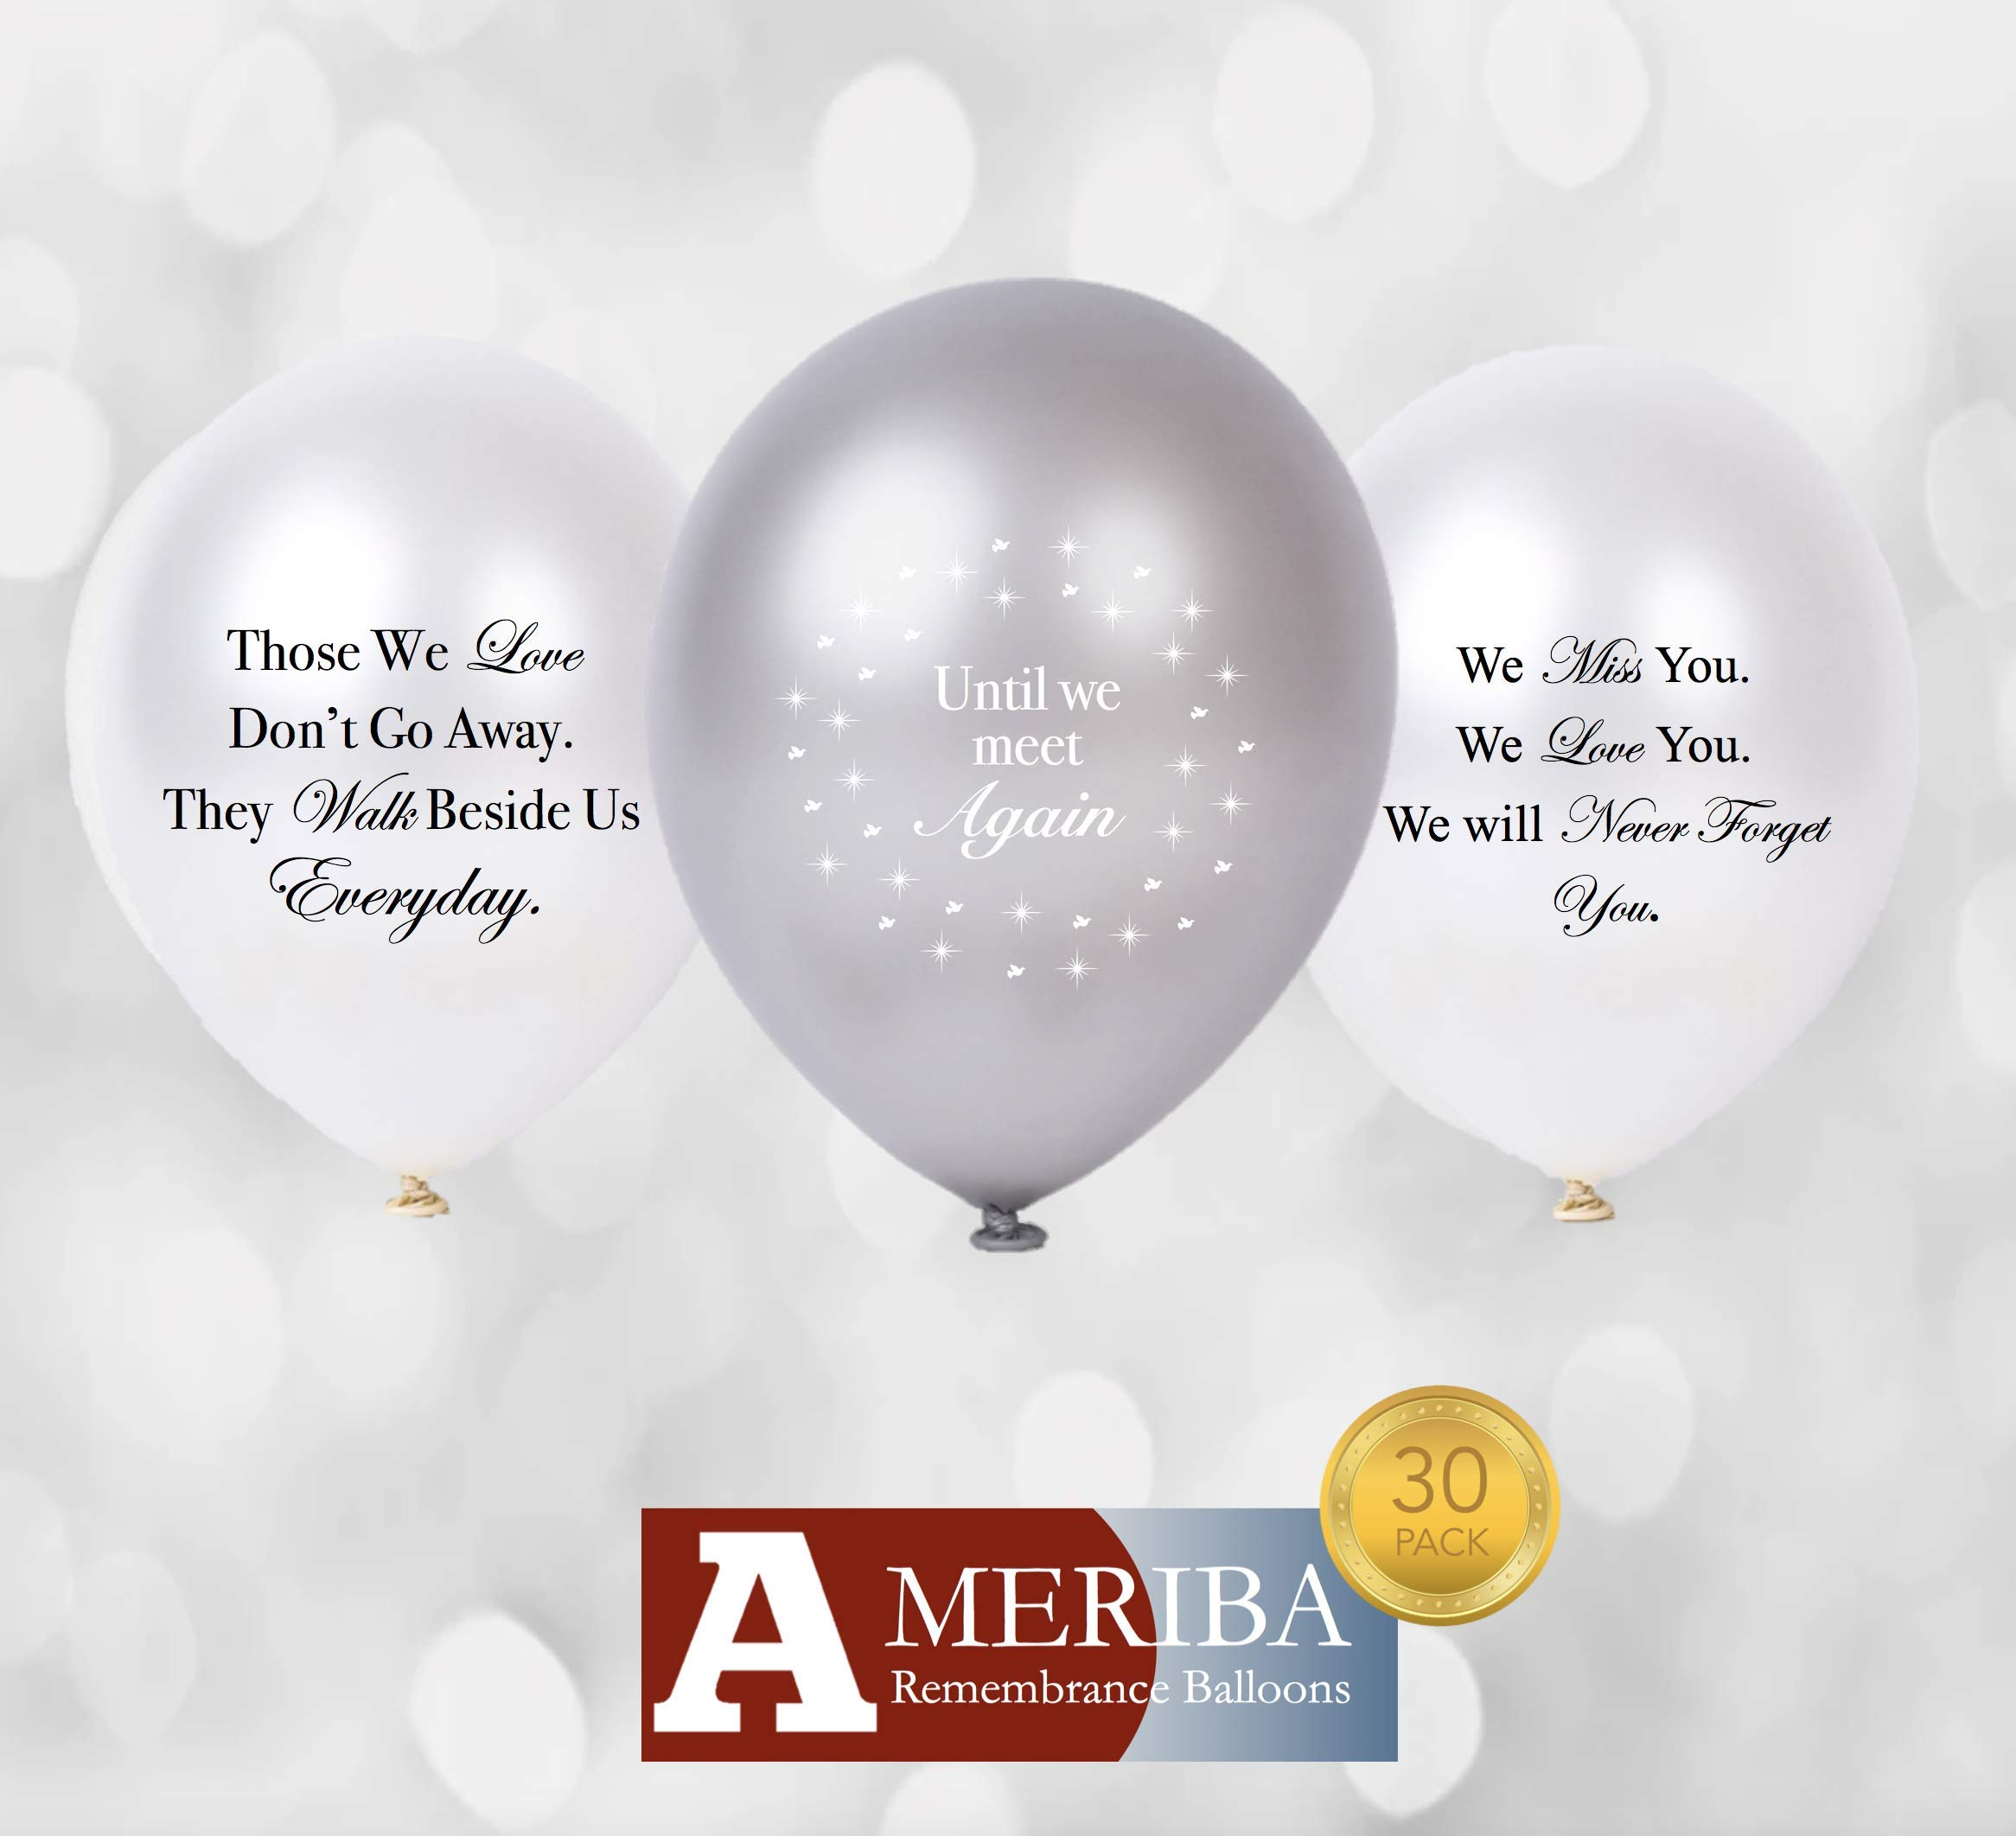 Biodegradable Remembrance Balloons: 30pc White & Silver Funeral Personalizable Balloons for Balloon Releases & Sympathy Gifts | Created/Sold by AMERIBA, a USA company (Variety Pk, Black/White Writing)